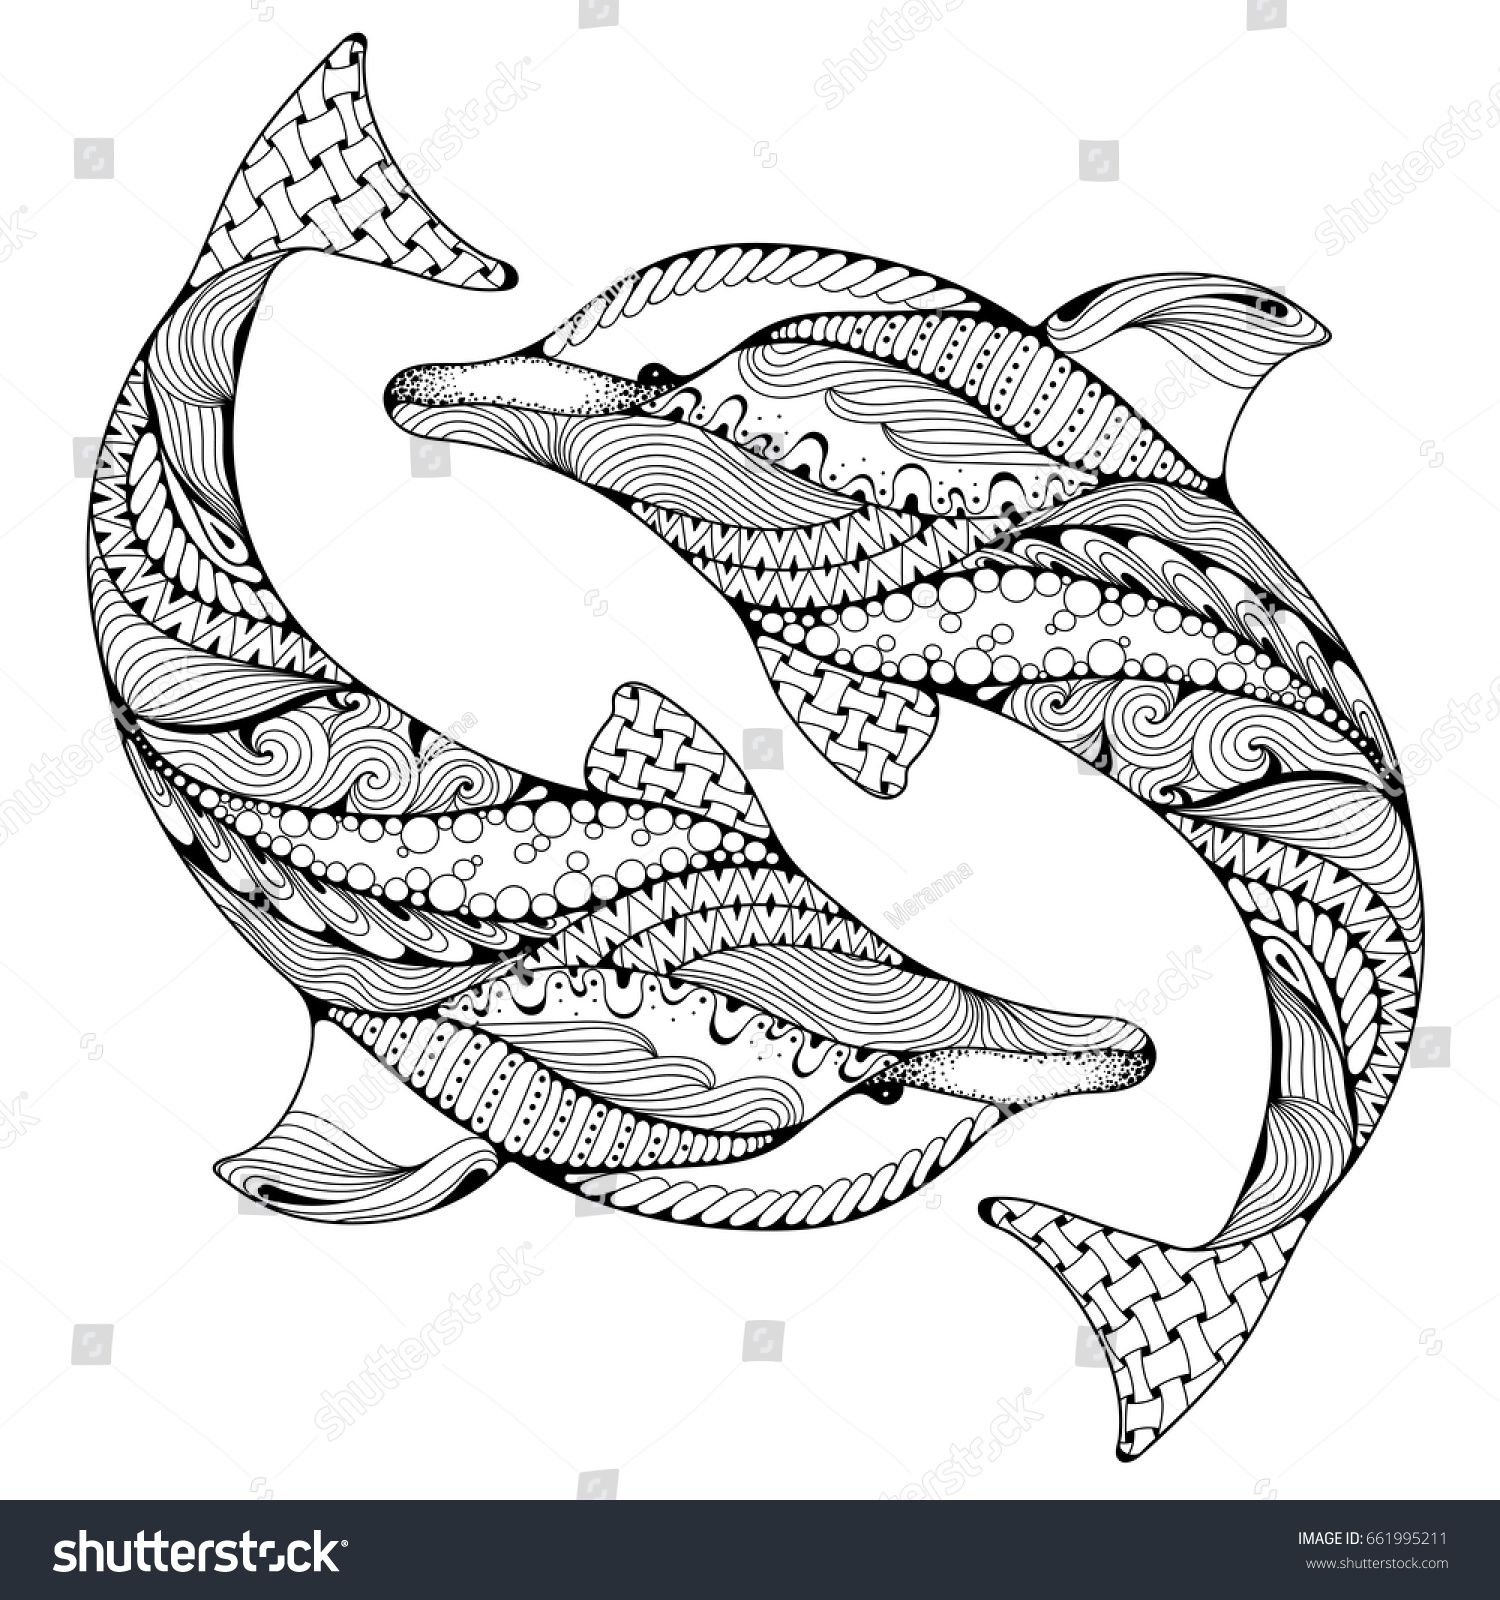 Stylized ocean dolphin animal freehand sketch for adult anti stress coloring page with doodle and